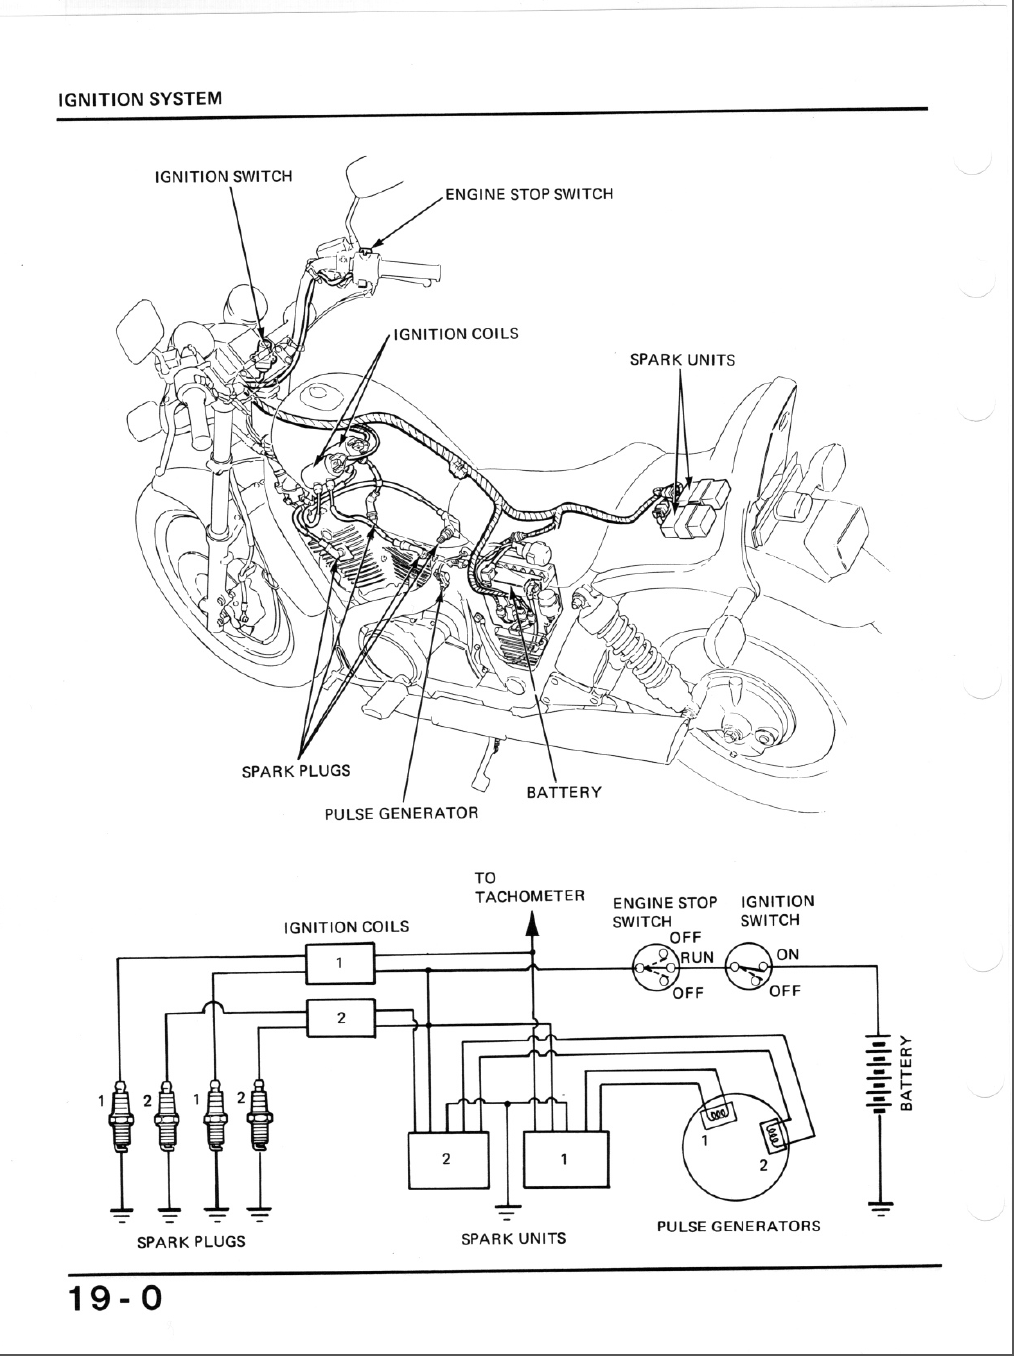 9267d1409799693 1984 honda shadow 700 ignition system 1984 honda shadow 700 1985 vt700c wiring diagram at eliteediting.co